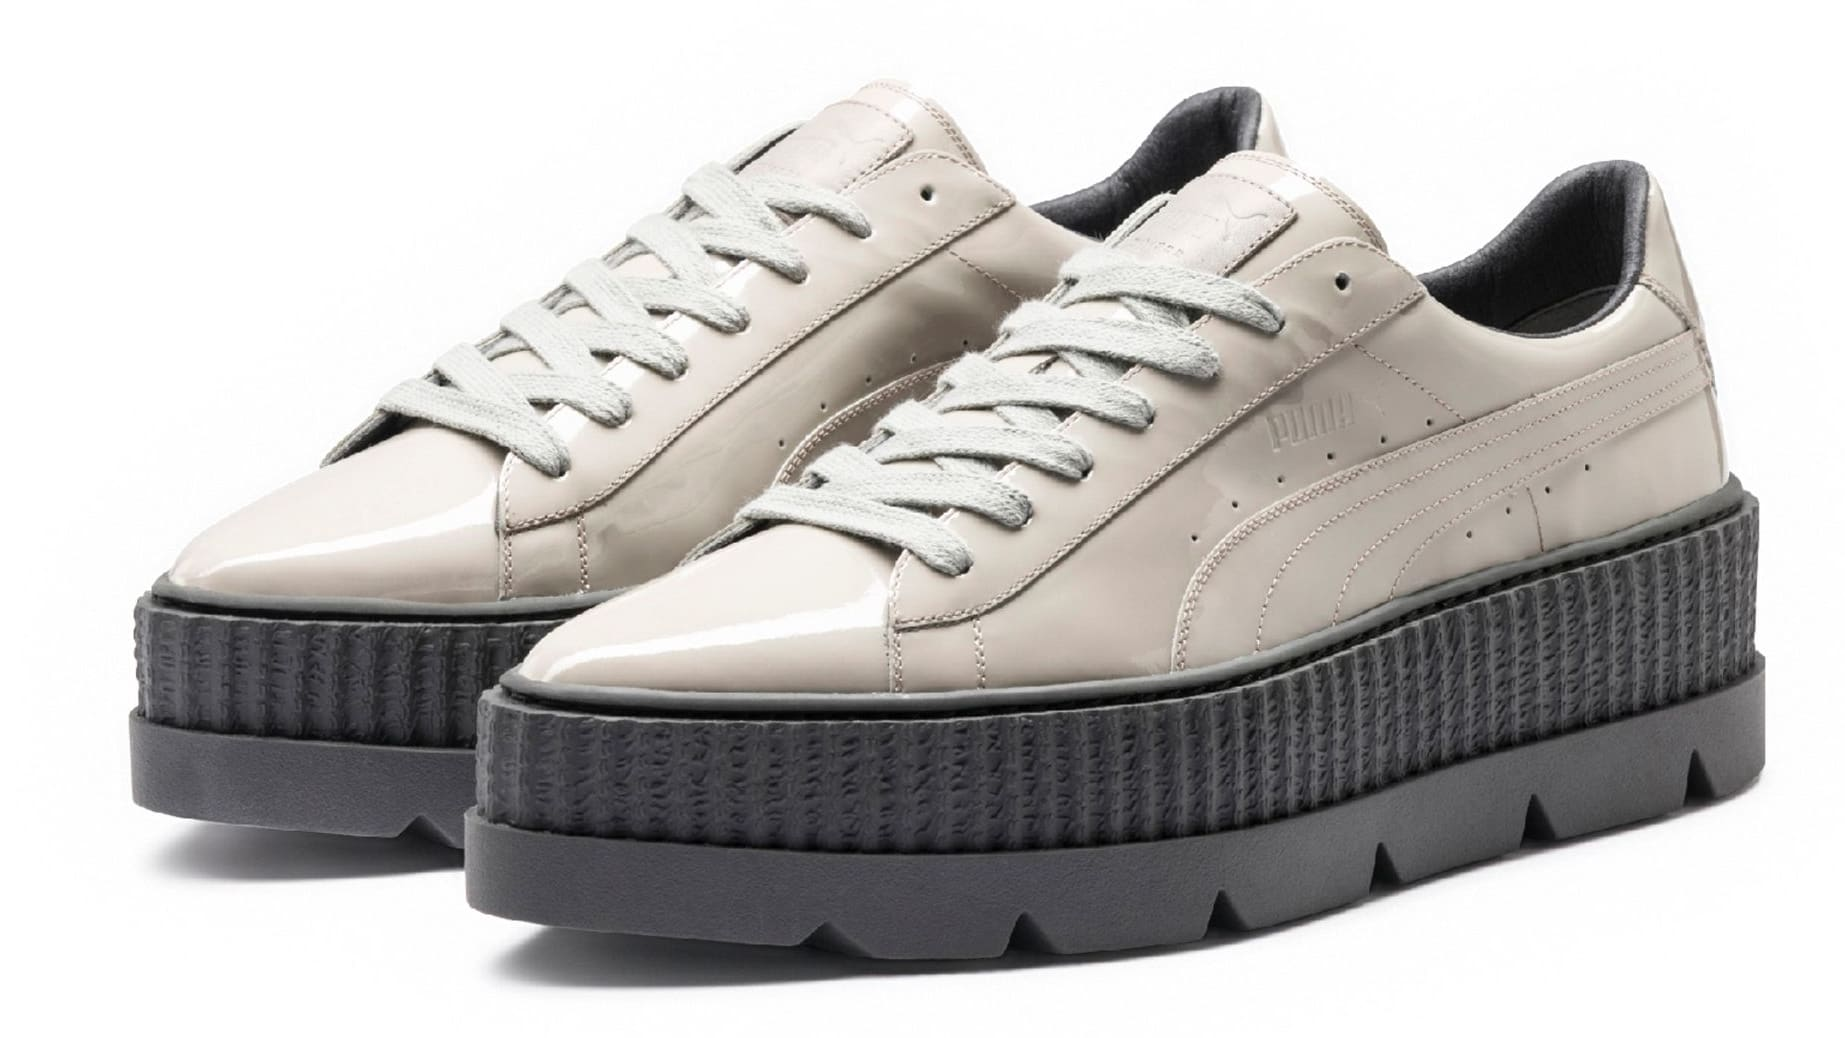 Fenty by Rihanna x Puma Pointy Creeper Patent